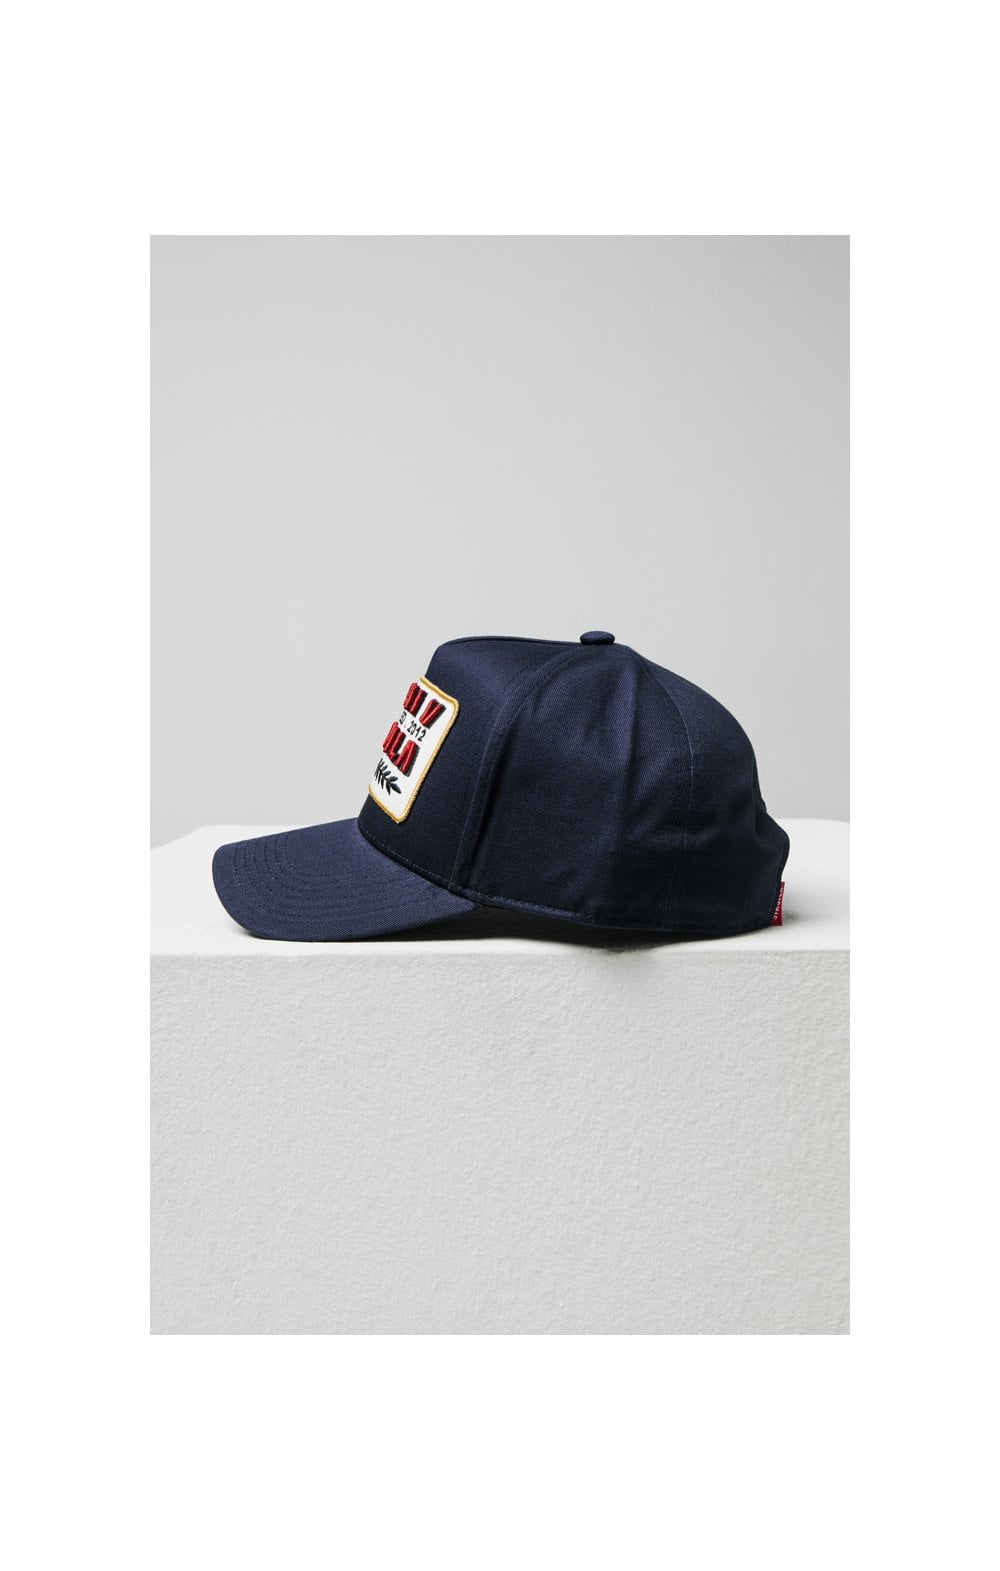 Load image into Gallery viewer, SikSilk Patch Full Trucker - Navy (3)